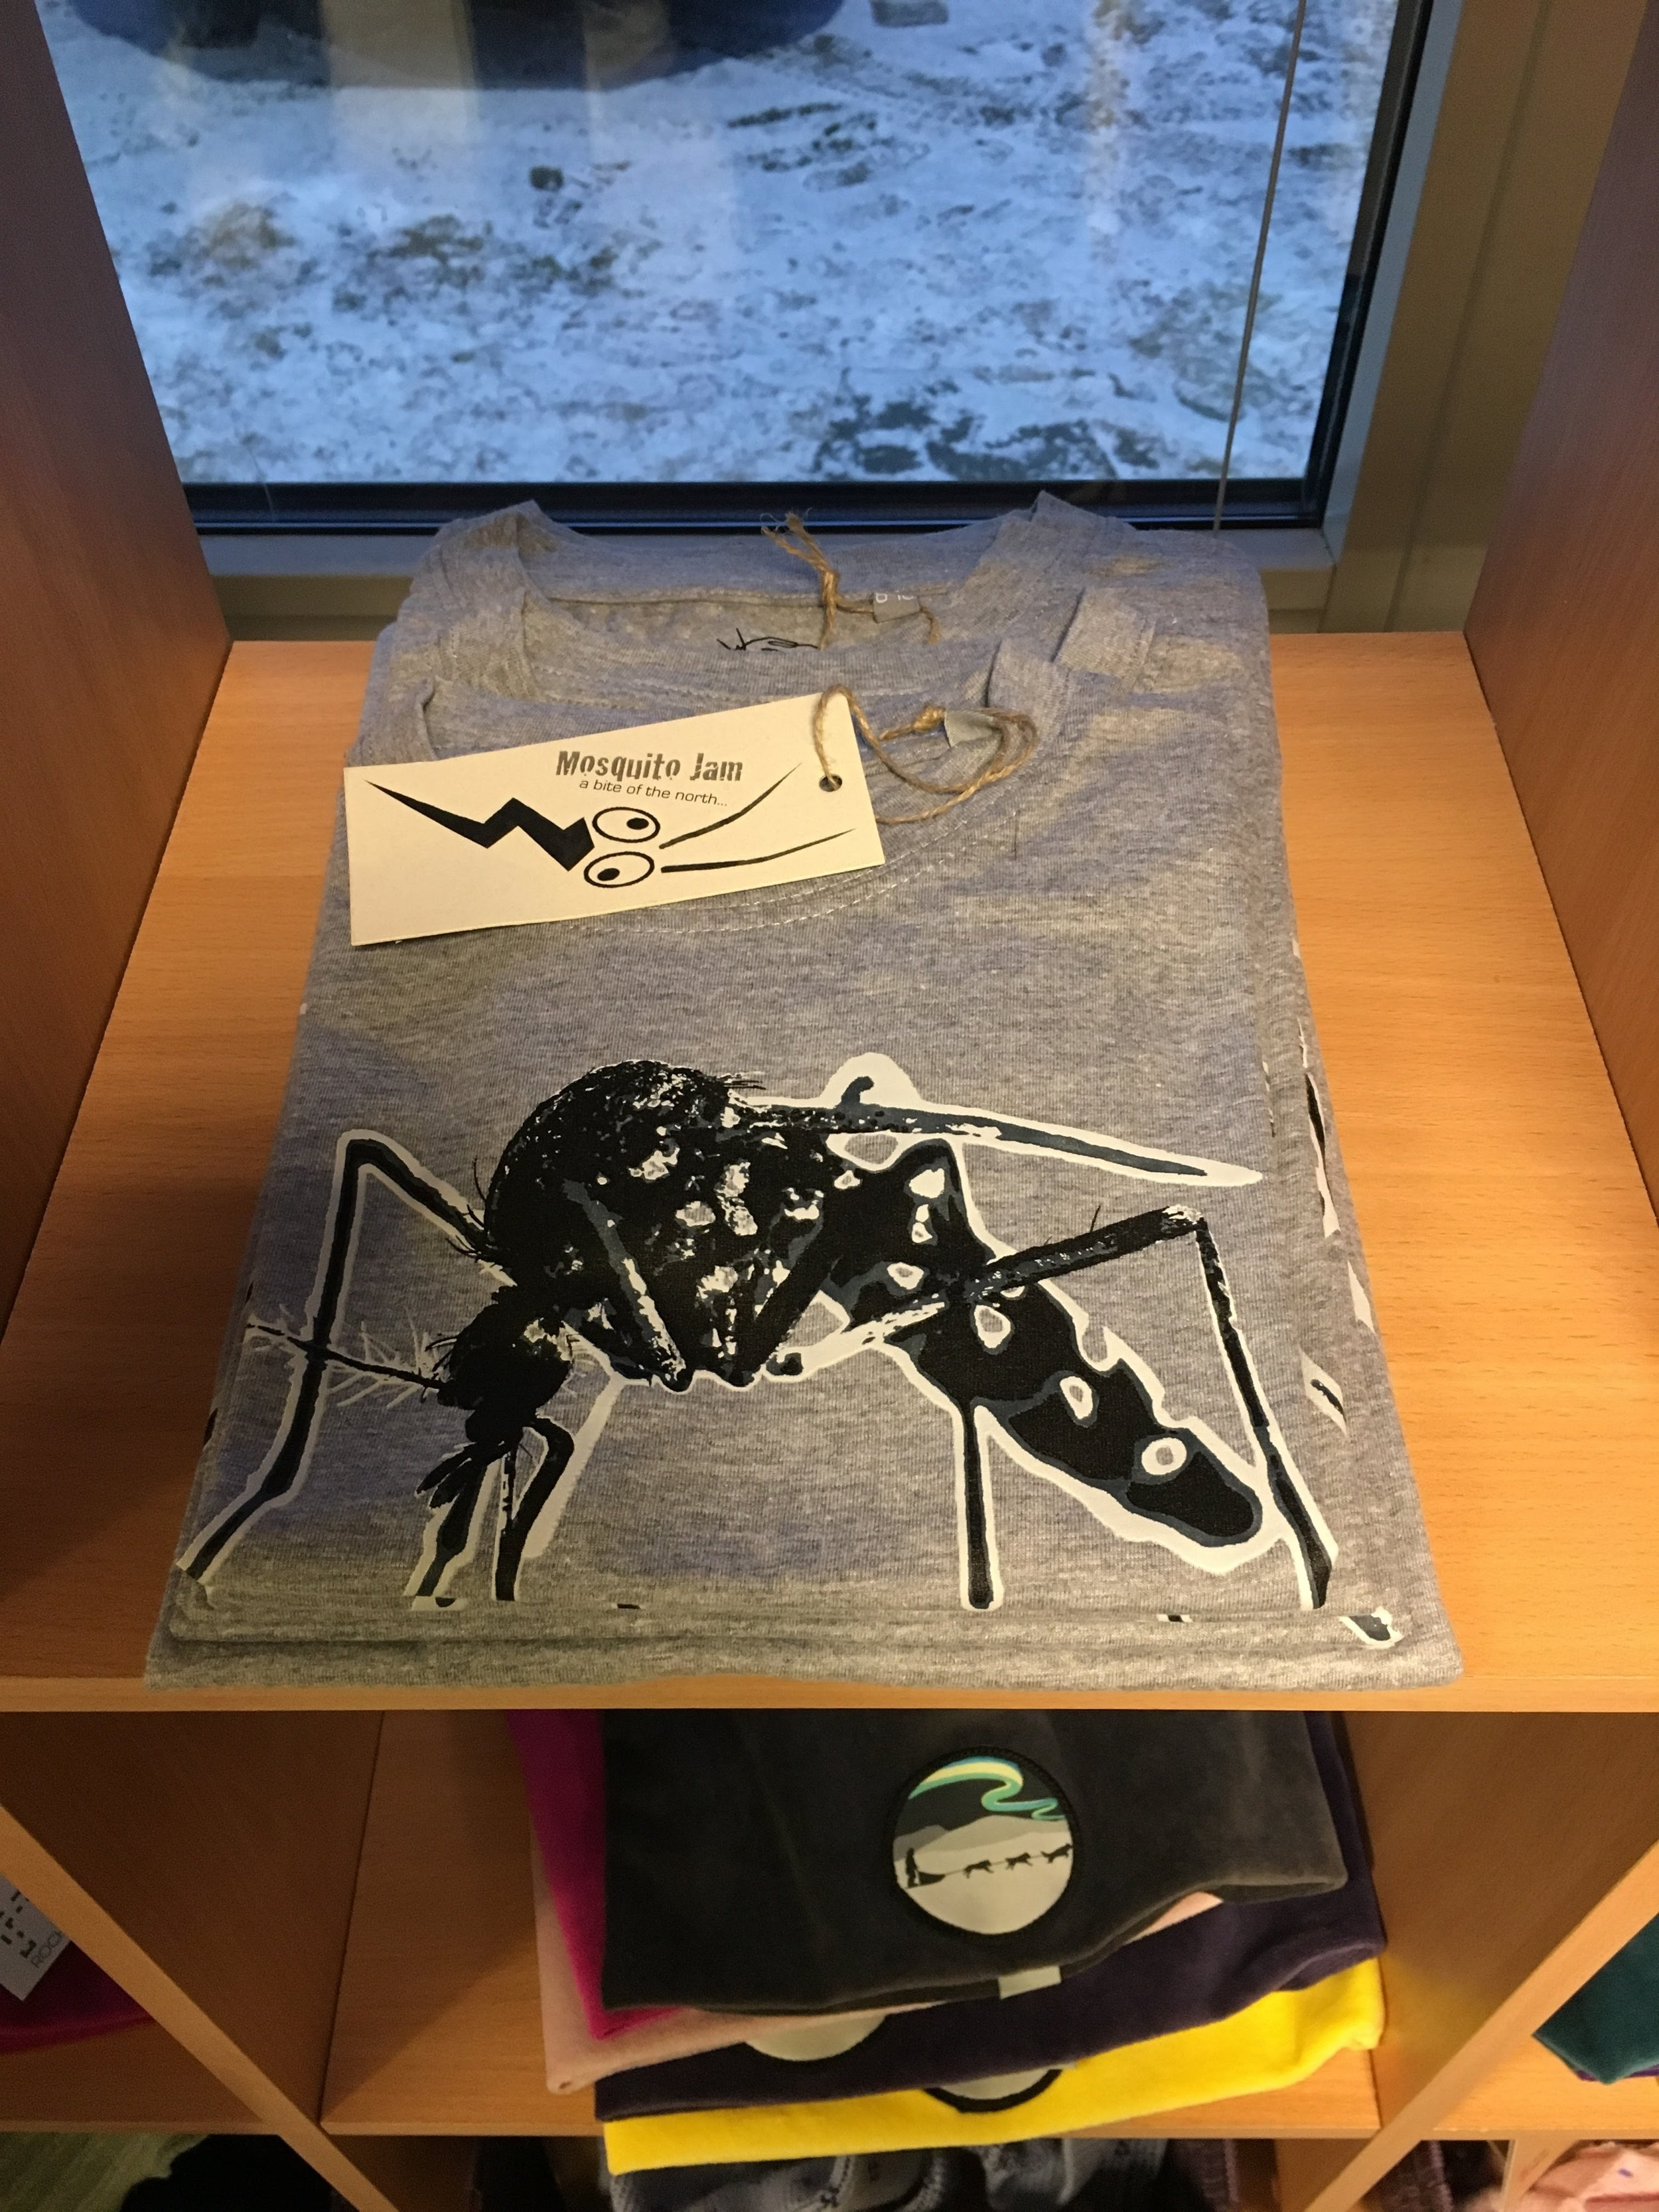 I've been warned about the monster Arctic mosquitos here in the summertime, and the fact they have them on T-shirts kinda proves it.